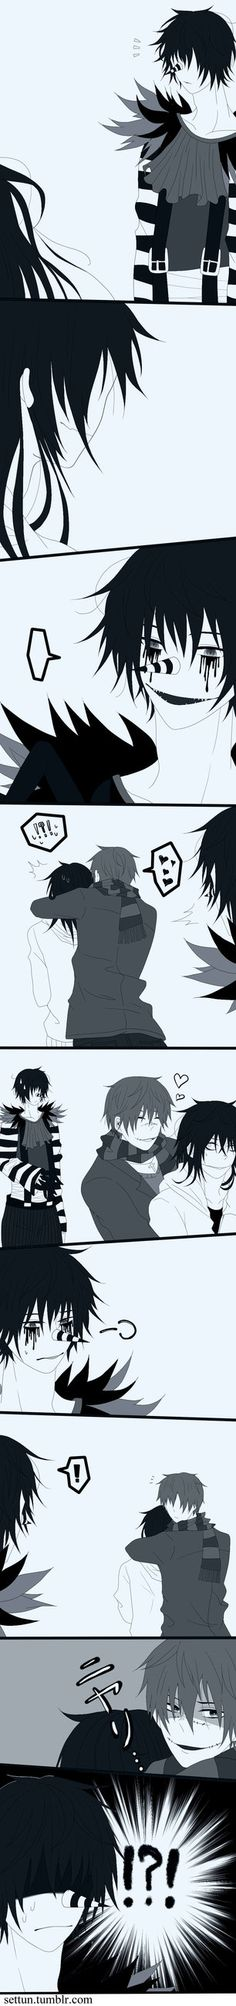 OMG LMAO THIS IS TOO PERFECT! ||Laughing Jack, Jeff the Killer, and Homicidal Liu~Creepypasta|| Laughing Jack x Jeff the Killer